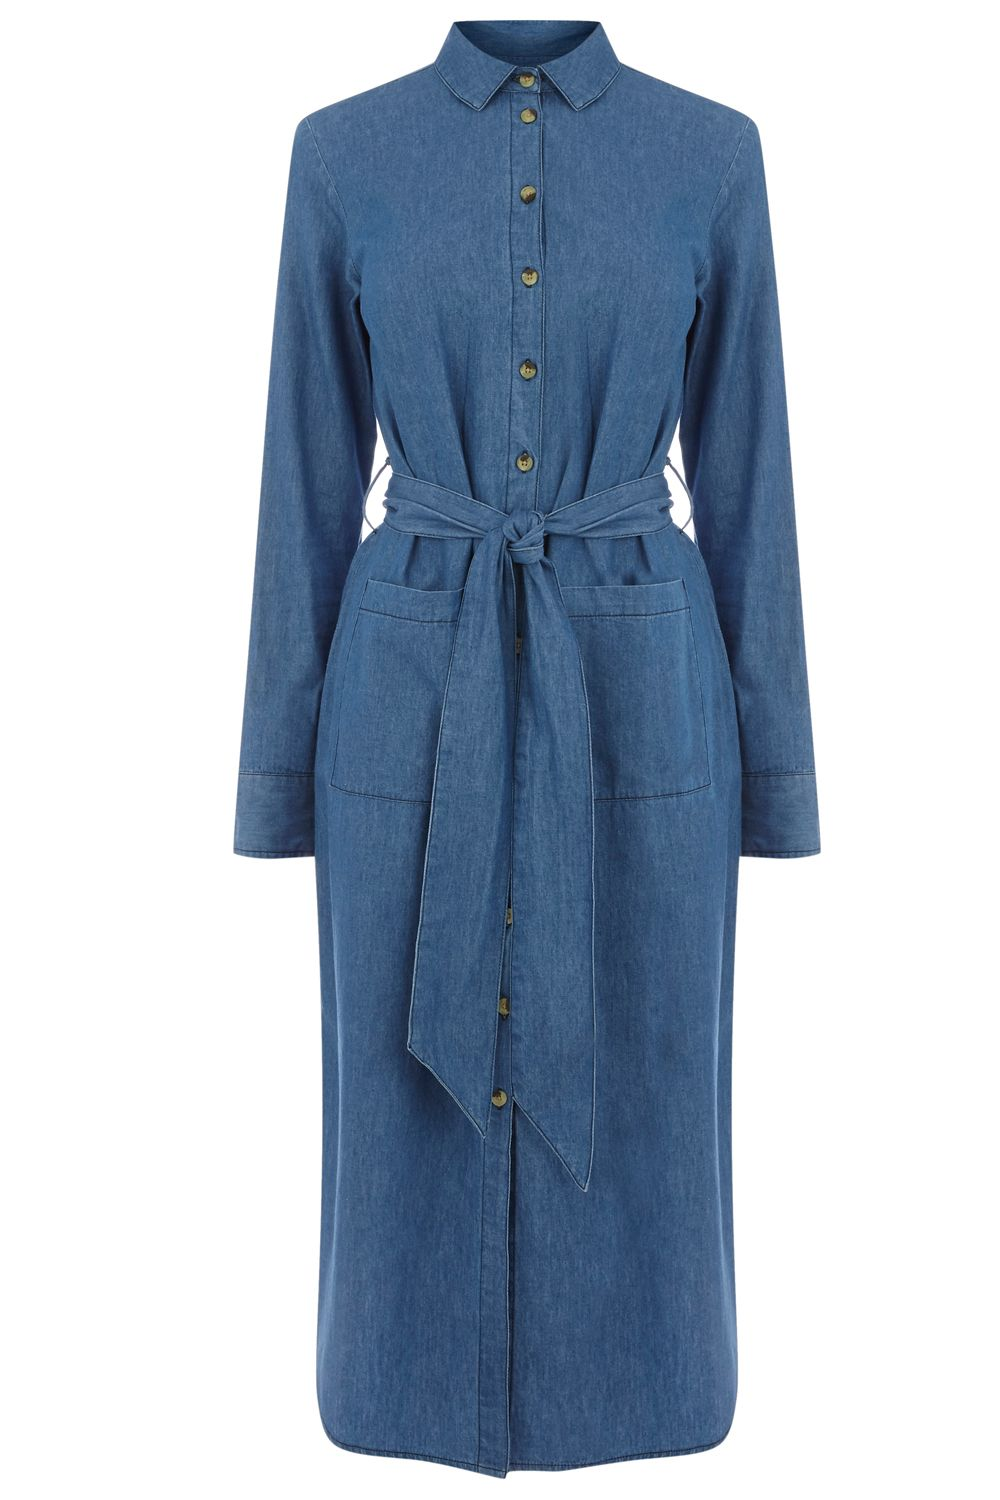 Warehouse Denim Shirt Midi Dress, Denim